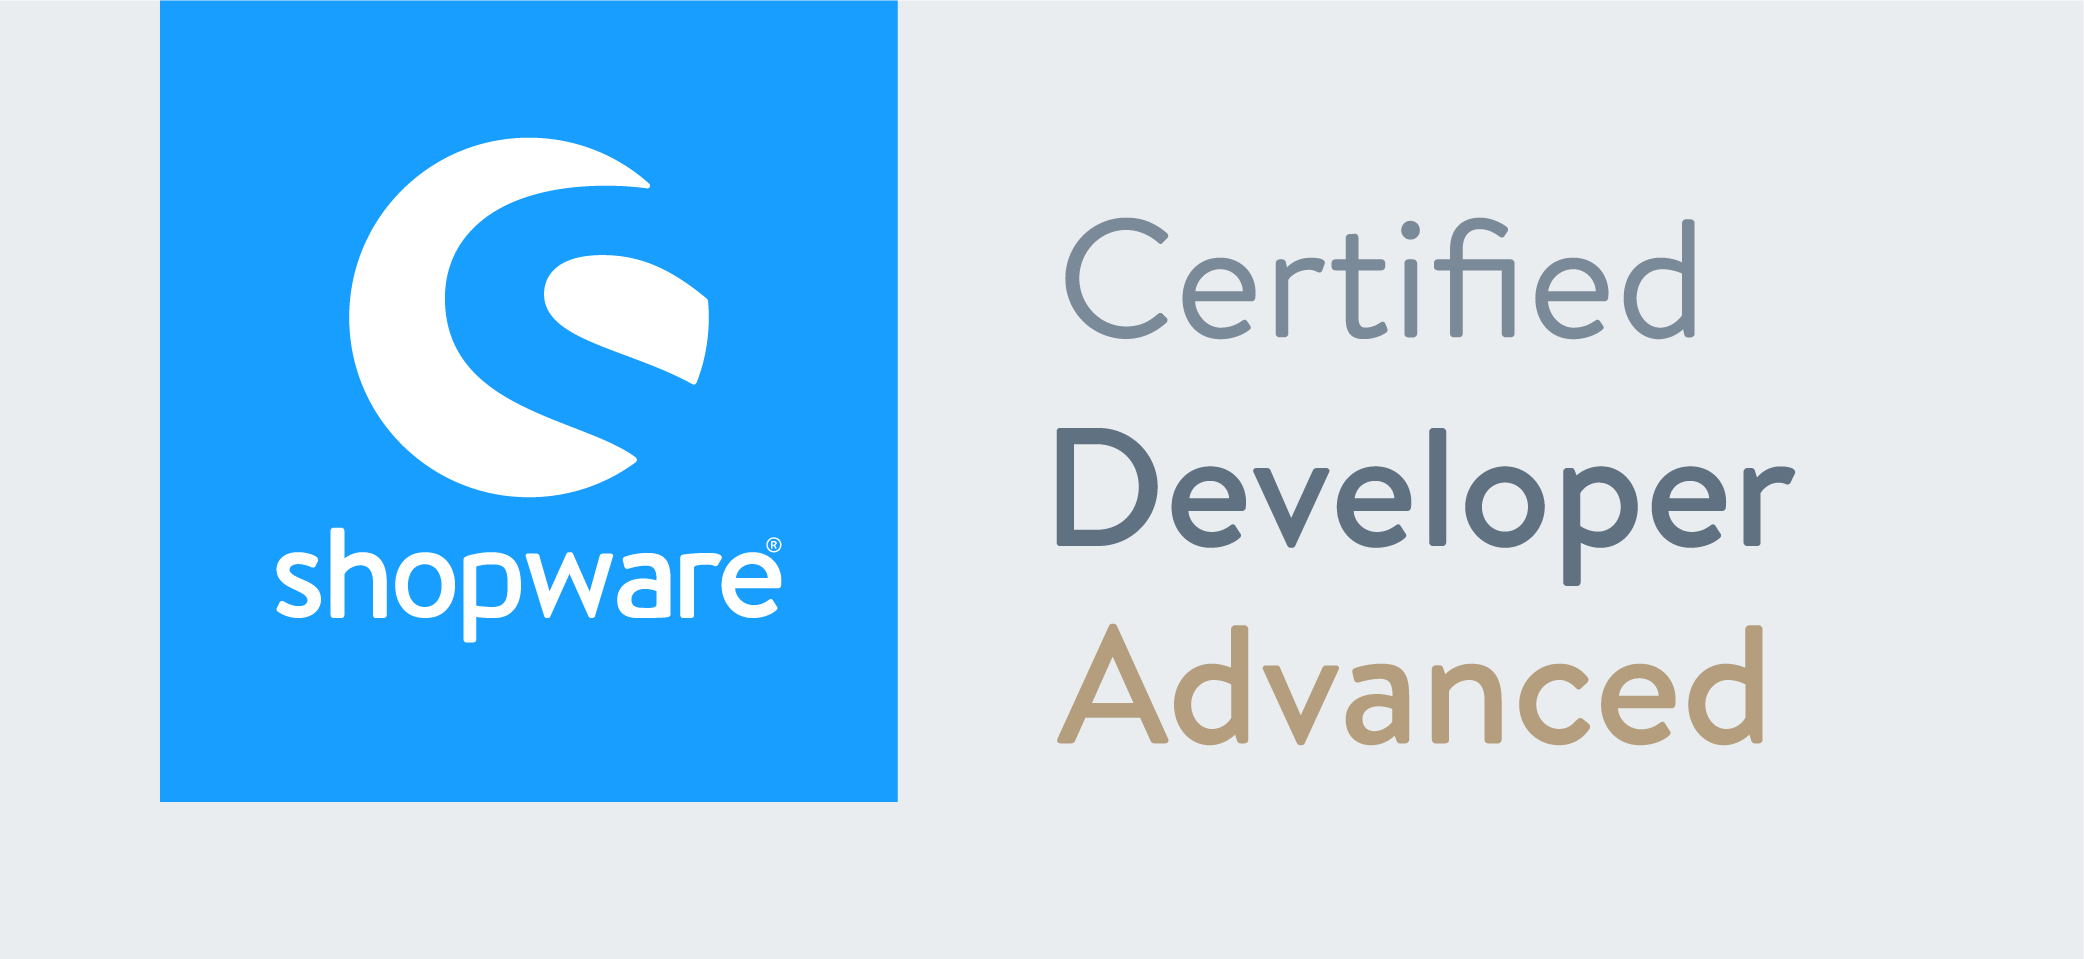 SHOPWARE Certified Advanced Developer